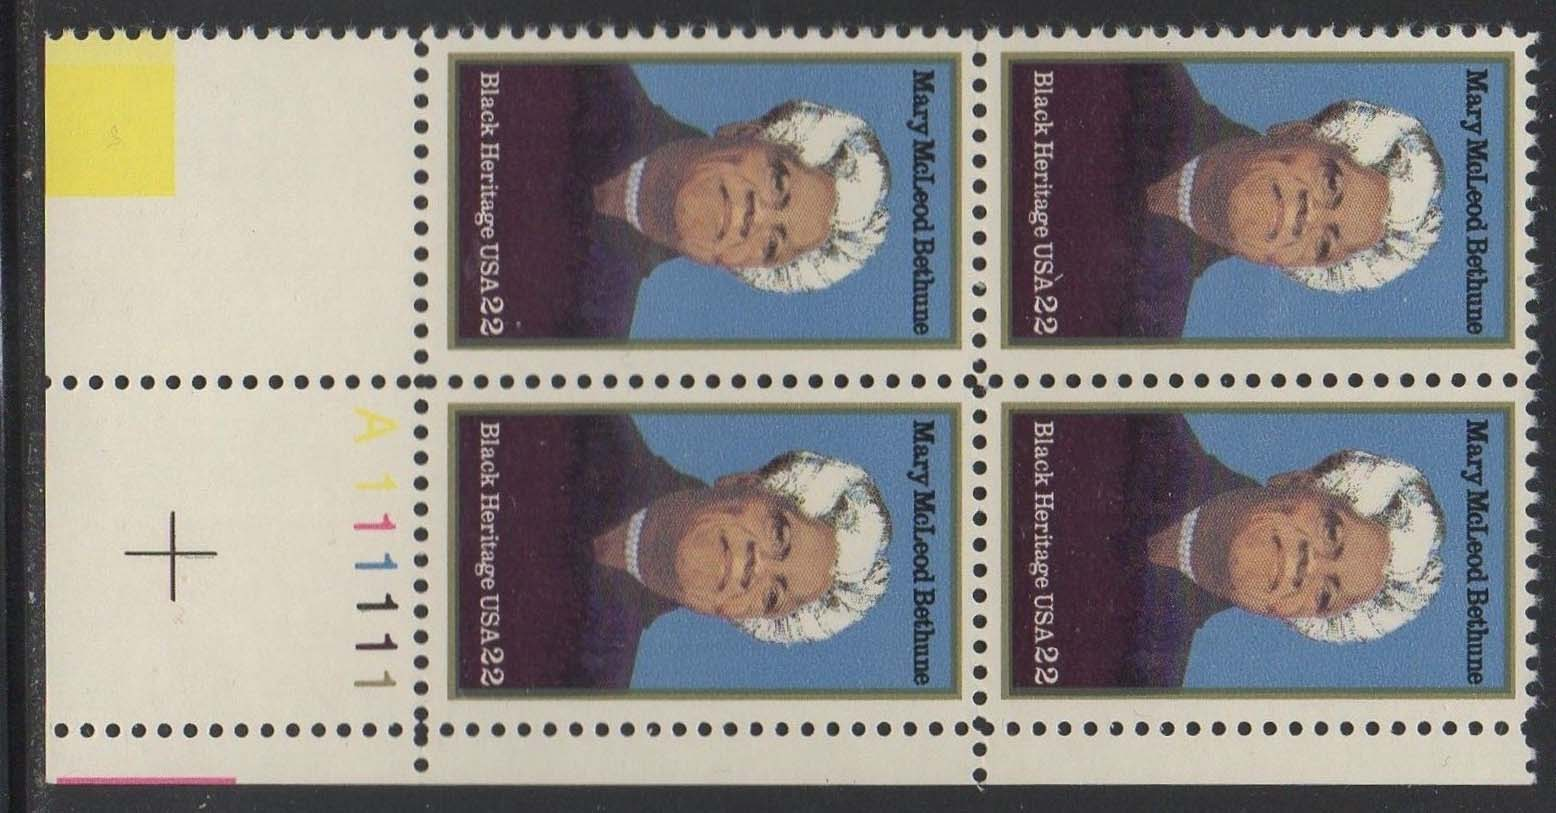 "Scott 2137 Plate Block (22 cents) <p> <a href=""/images/USA-Scott-2137-PB.jpg""><font color=green><b>View the image</a></b></font>"